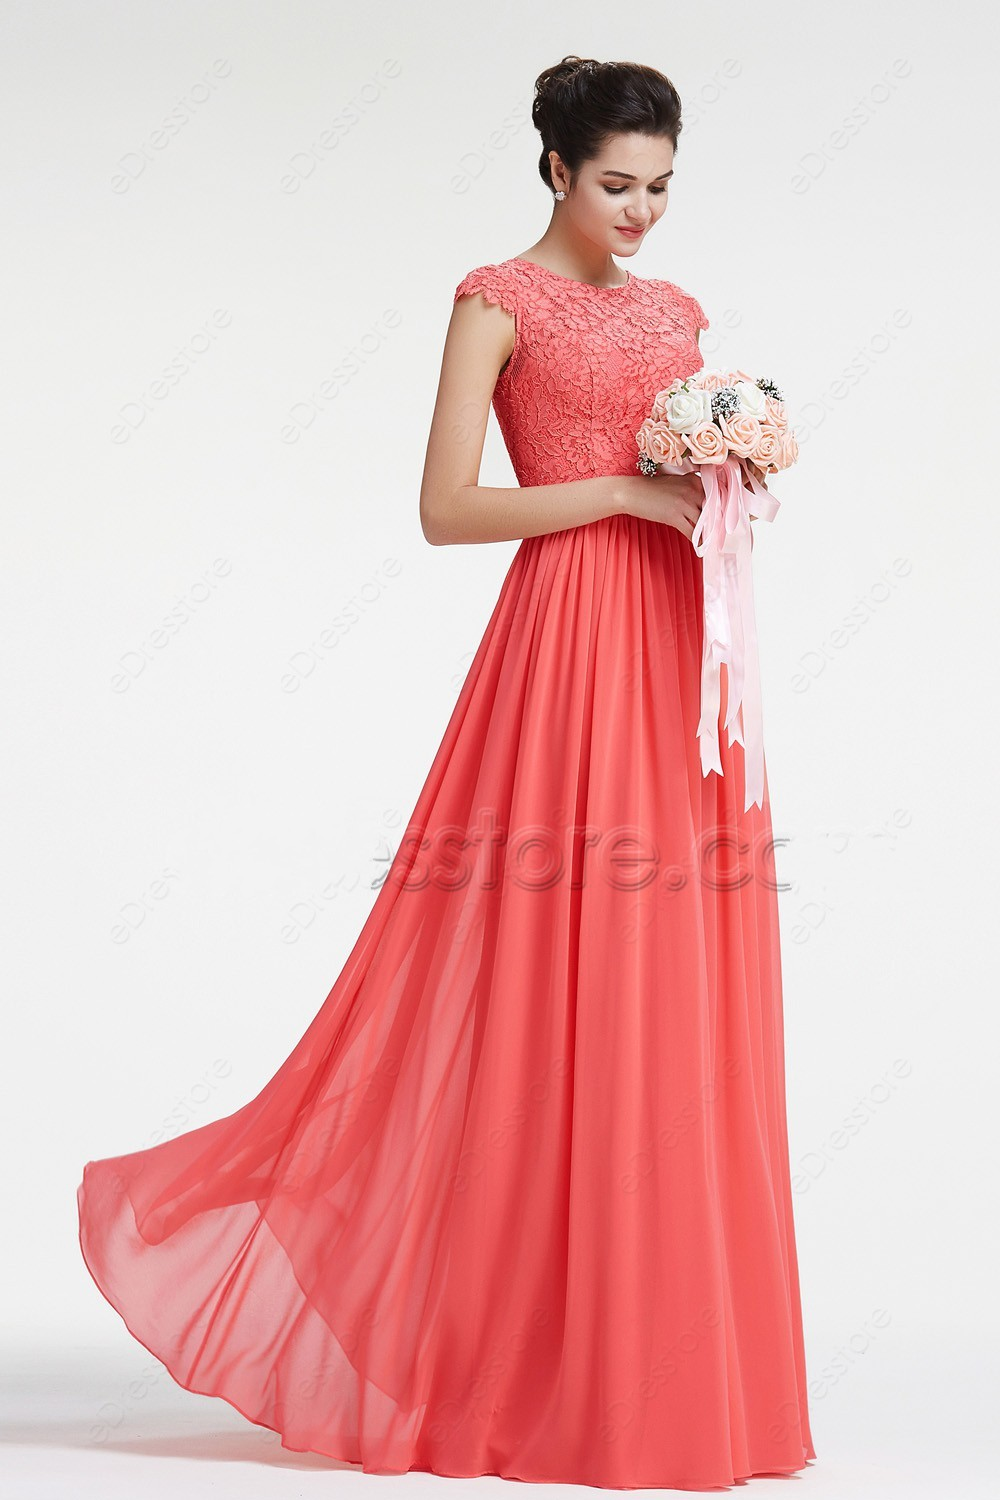 Coral Modest Chiffon Lace Bridesmaid Dresses Cap Sleeves Long  A-line Floor Length Wedding Guests Dresses Cheap